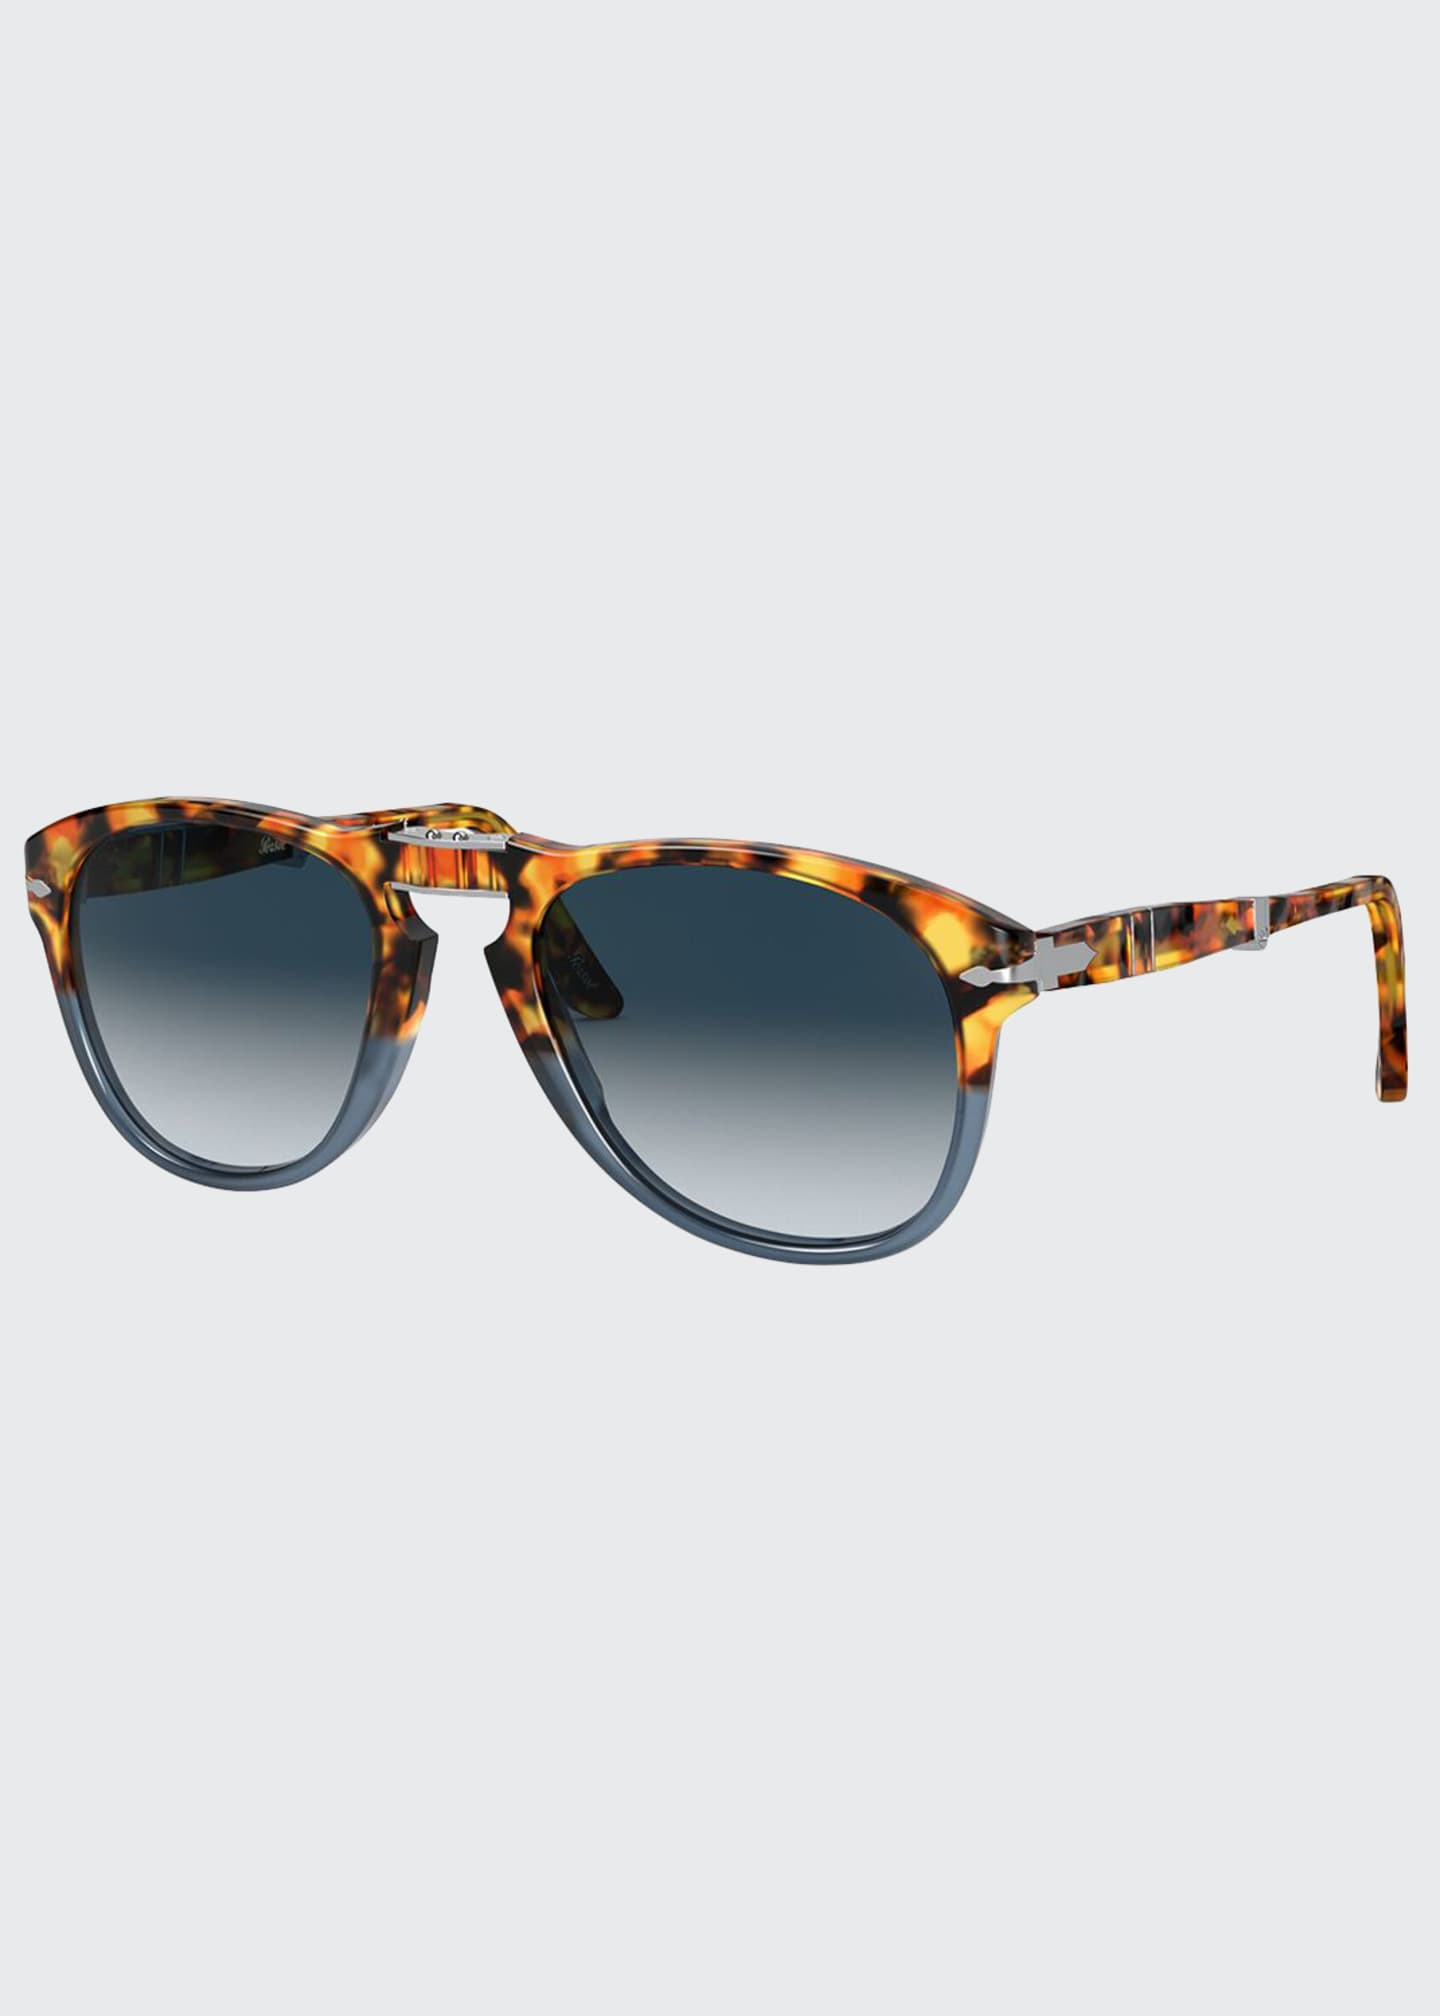 Men's Gradient Tortoiseshell Acetate Folding Sunglasses